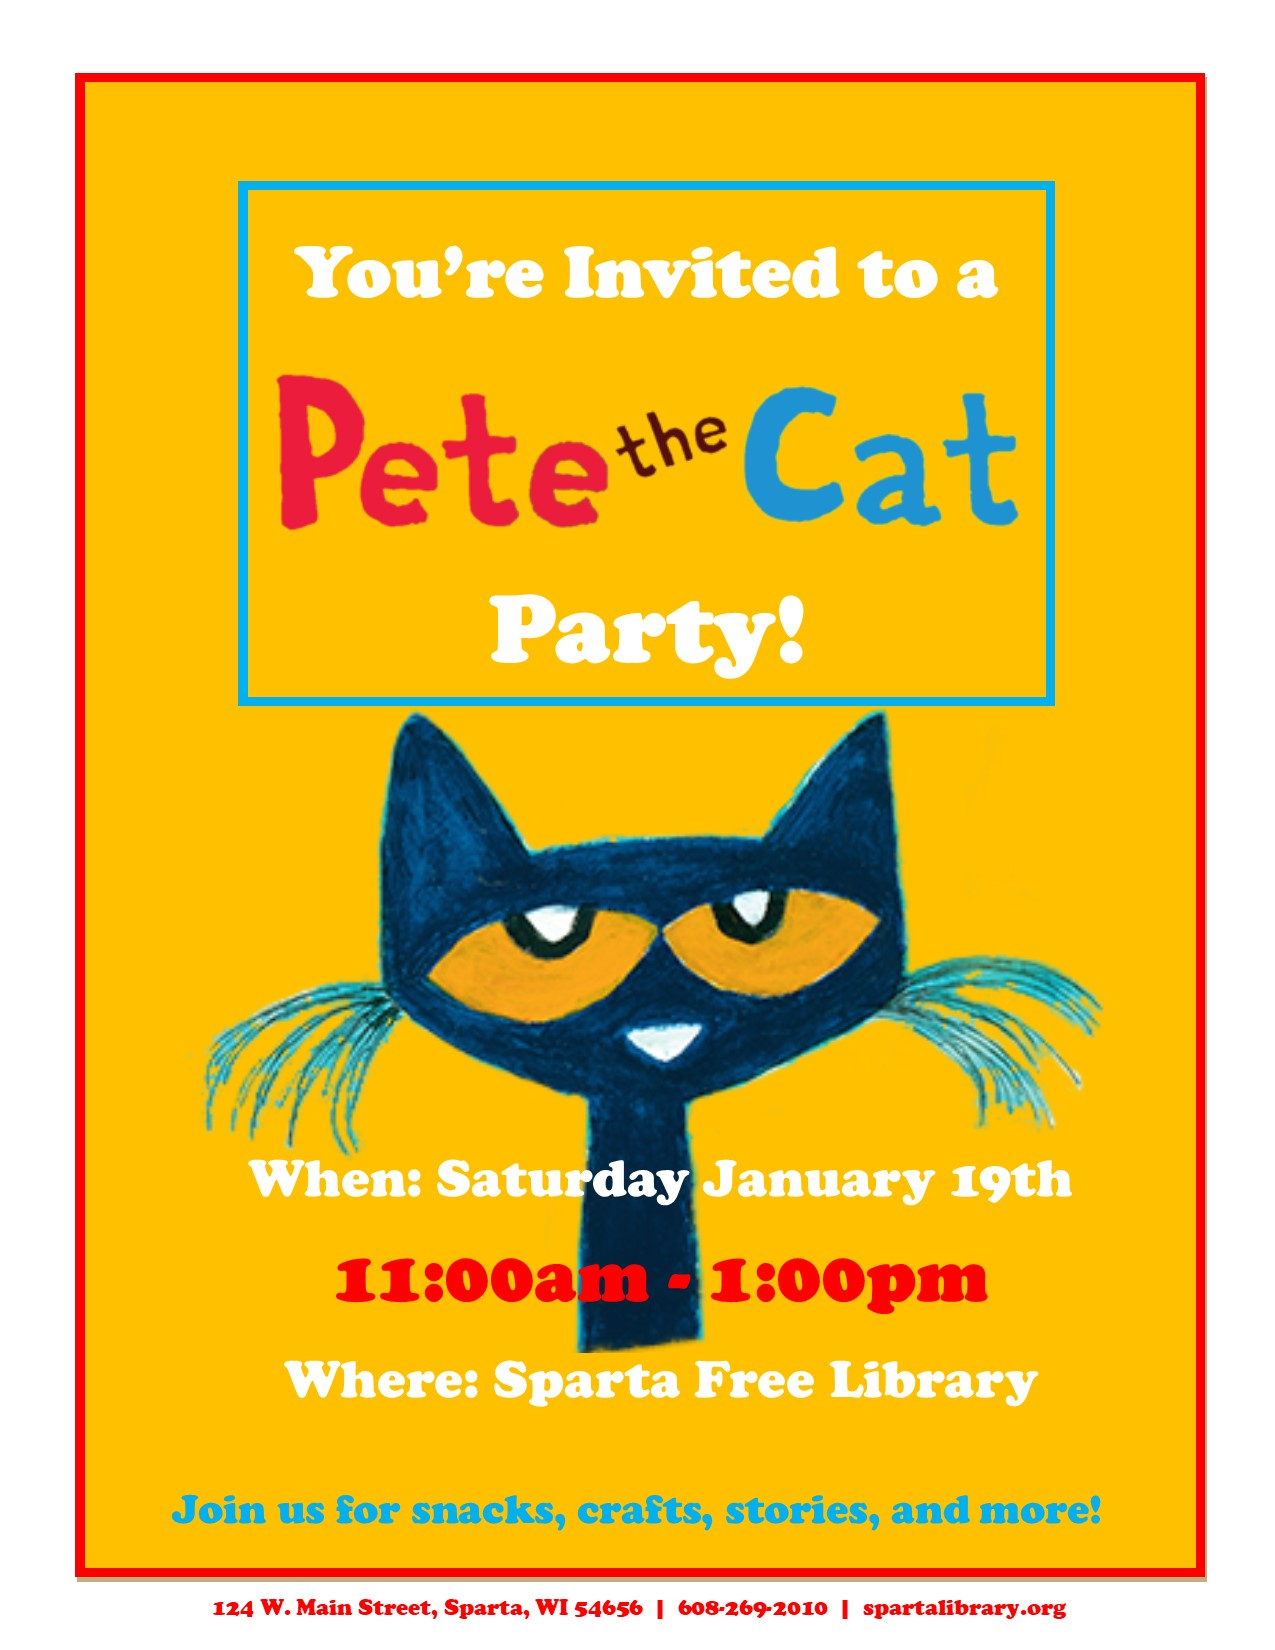 Pete the Cat Party @ Sparta Free Library | Sparta | Wisconsin | United States